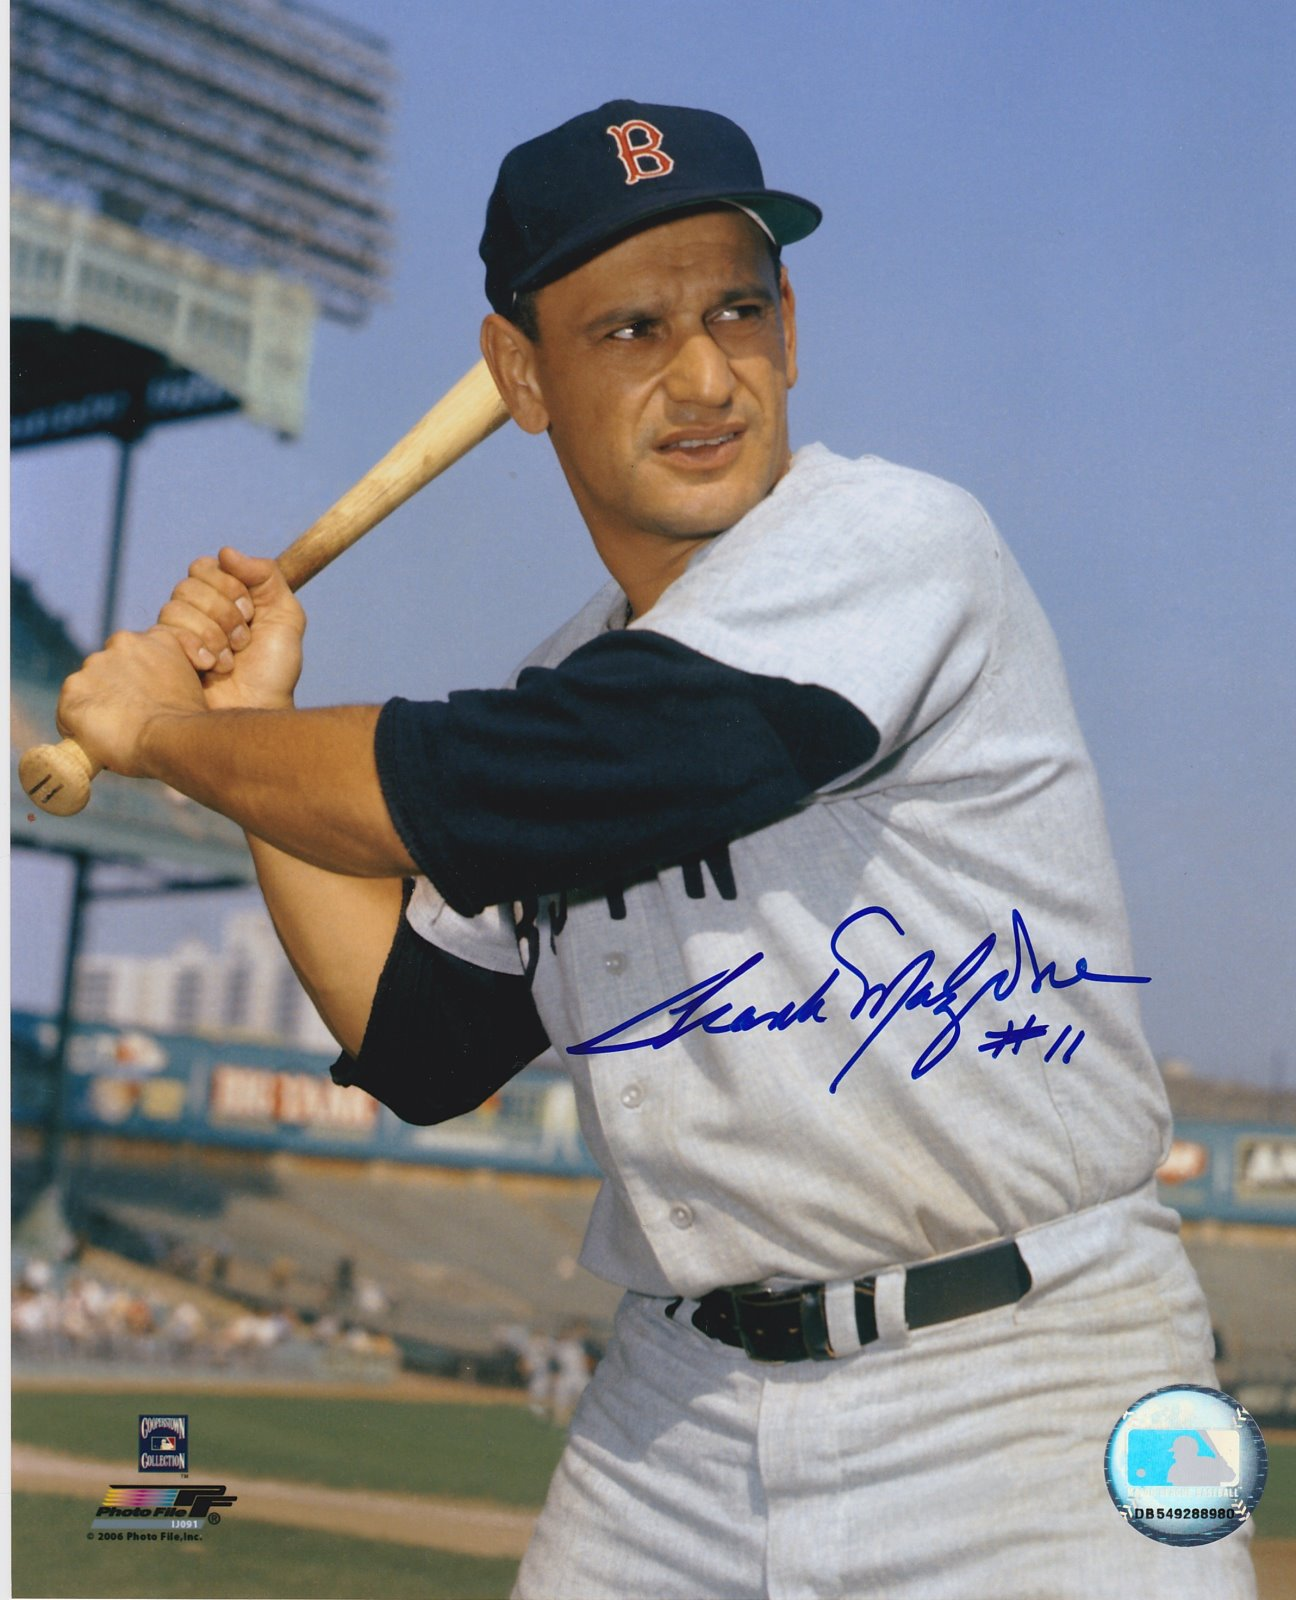 Frank Malzone Autograph 8x10 Color photo Boston Red Sox